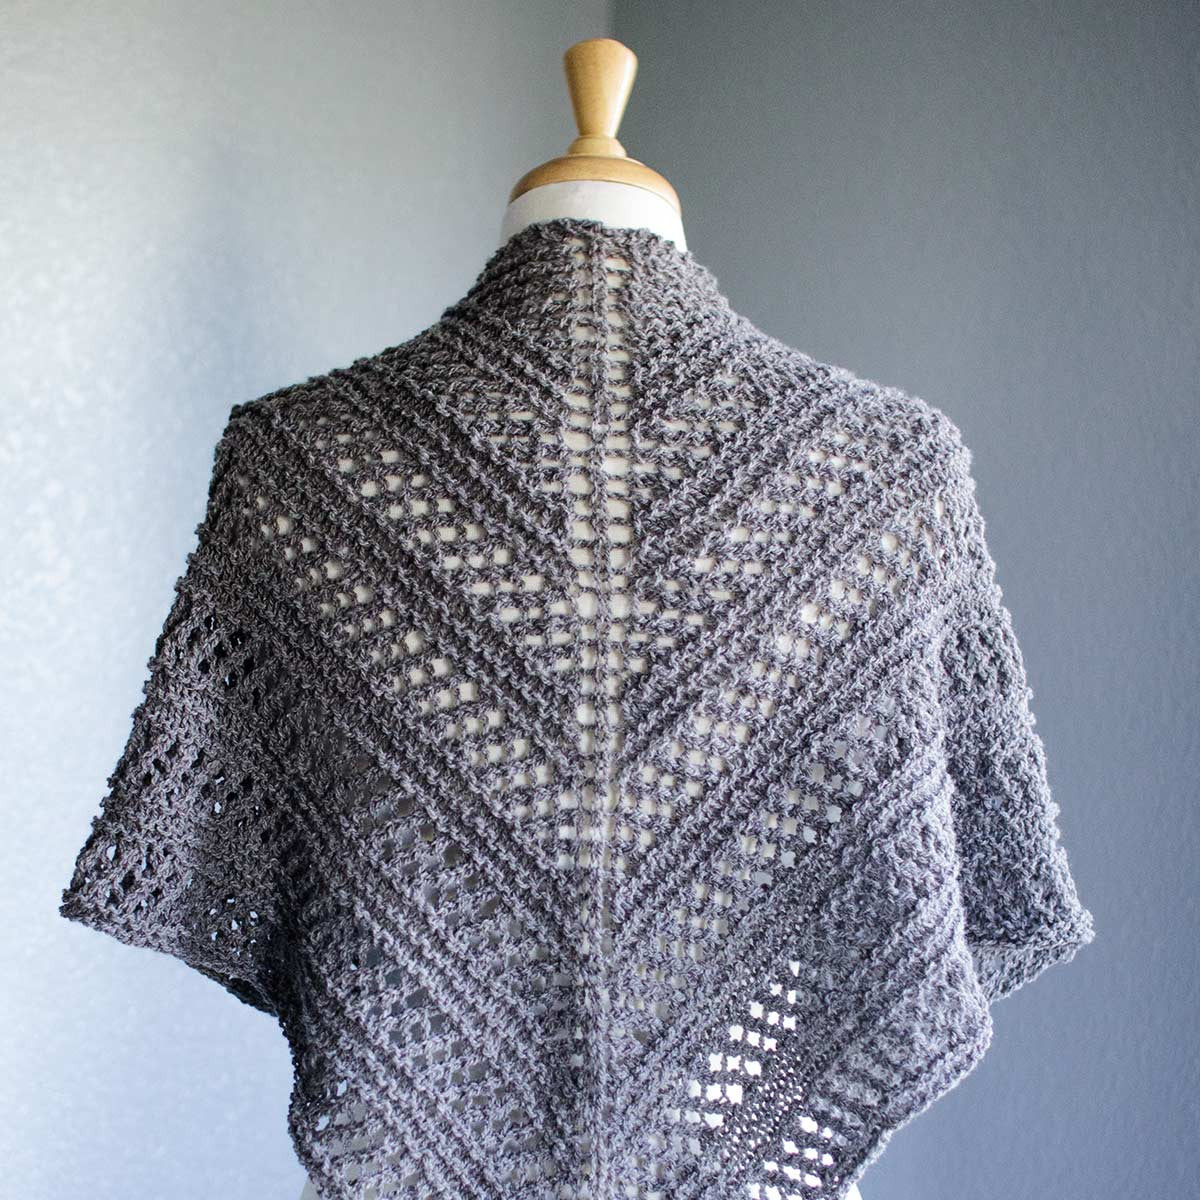 Ksaten knit openwork shawl argyle sheep ksaten shawl pattern knit bankloansurffo Image collections